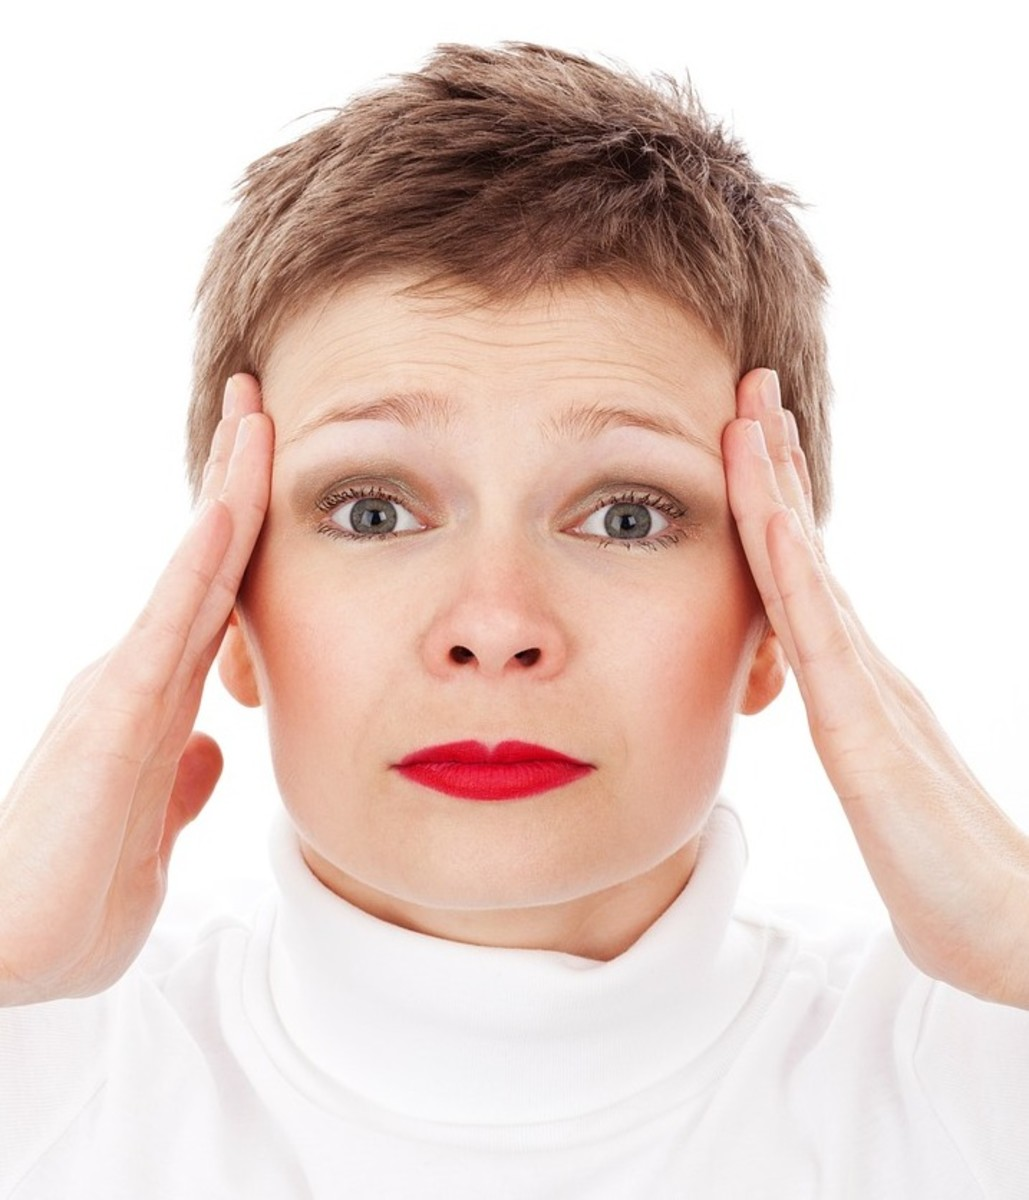 Migraine Symptoms, Treatment and Medication—It's Not